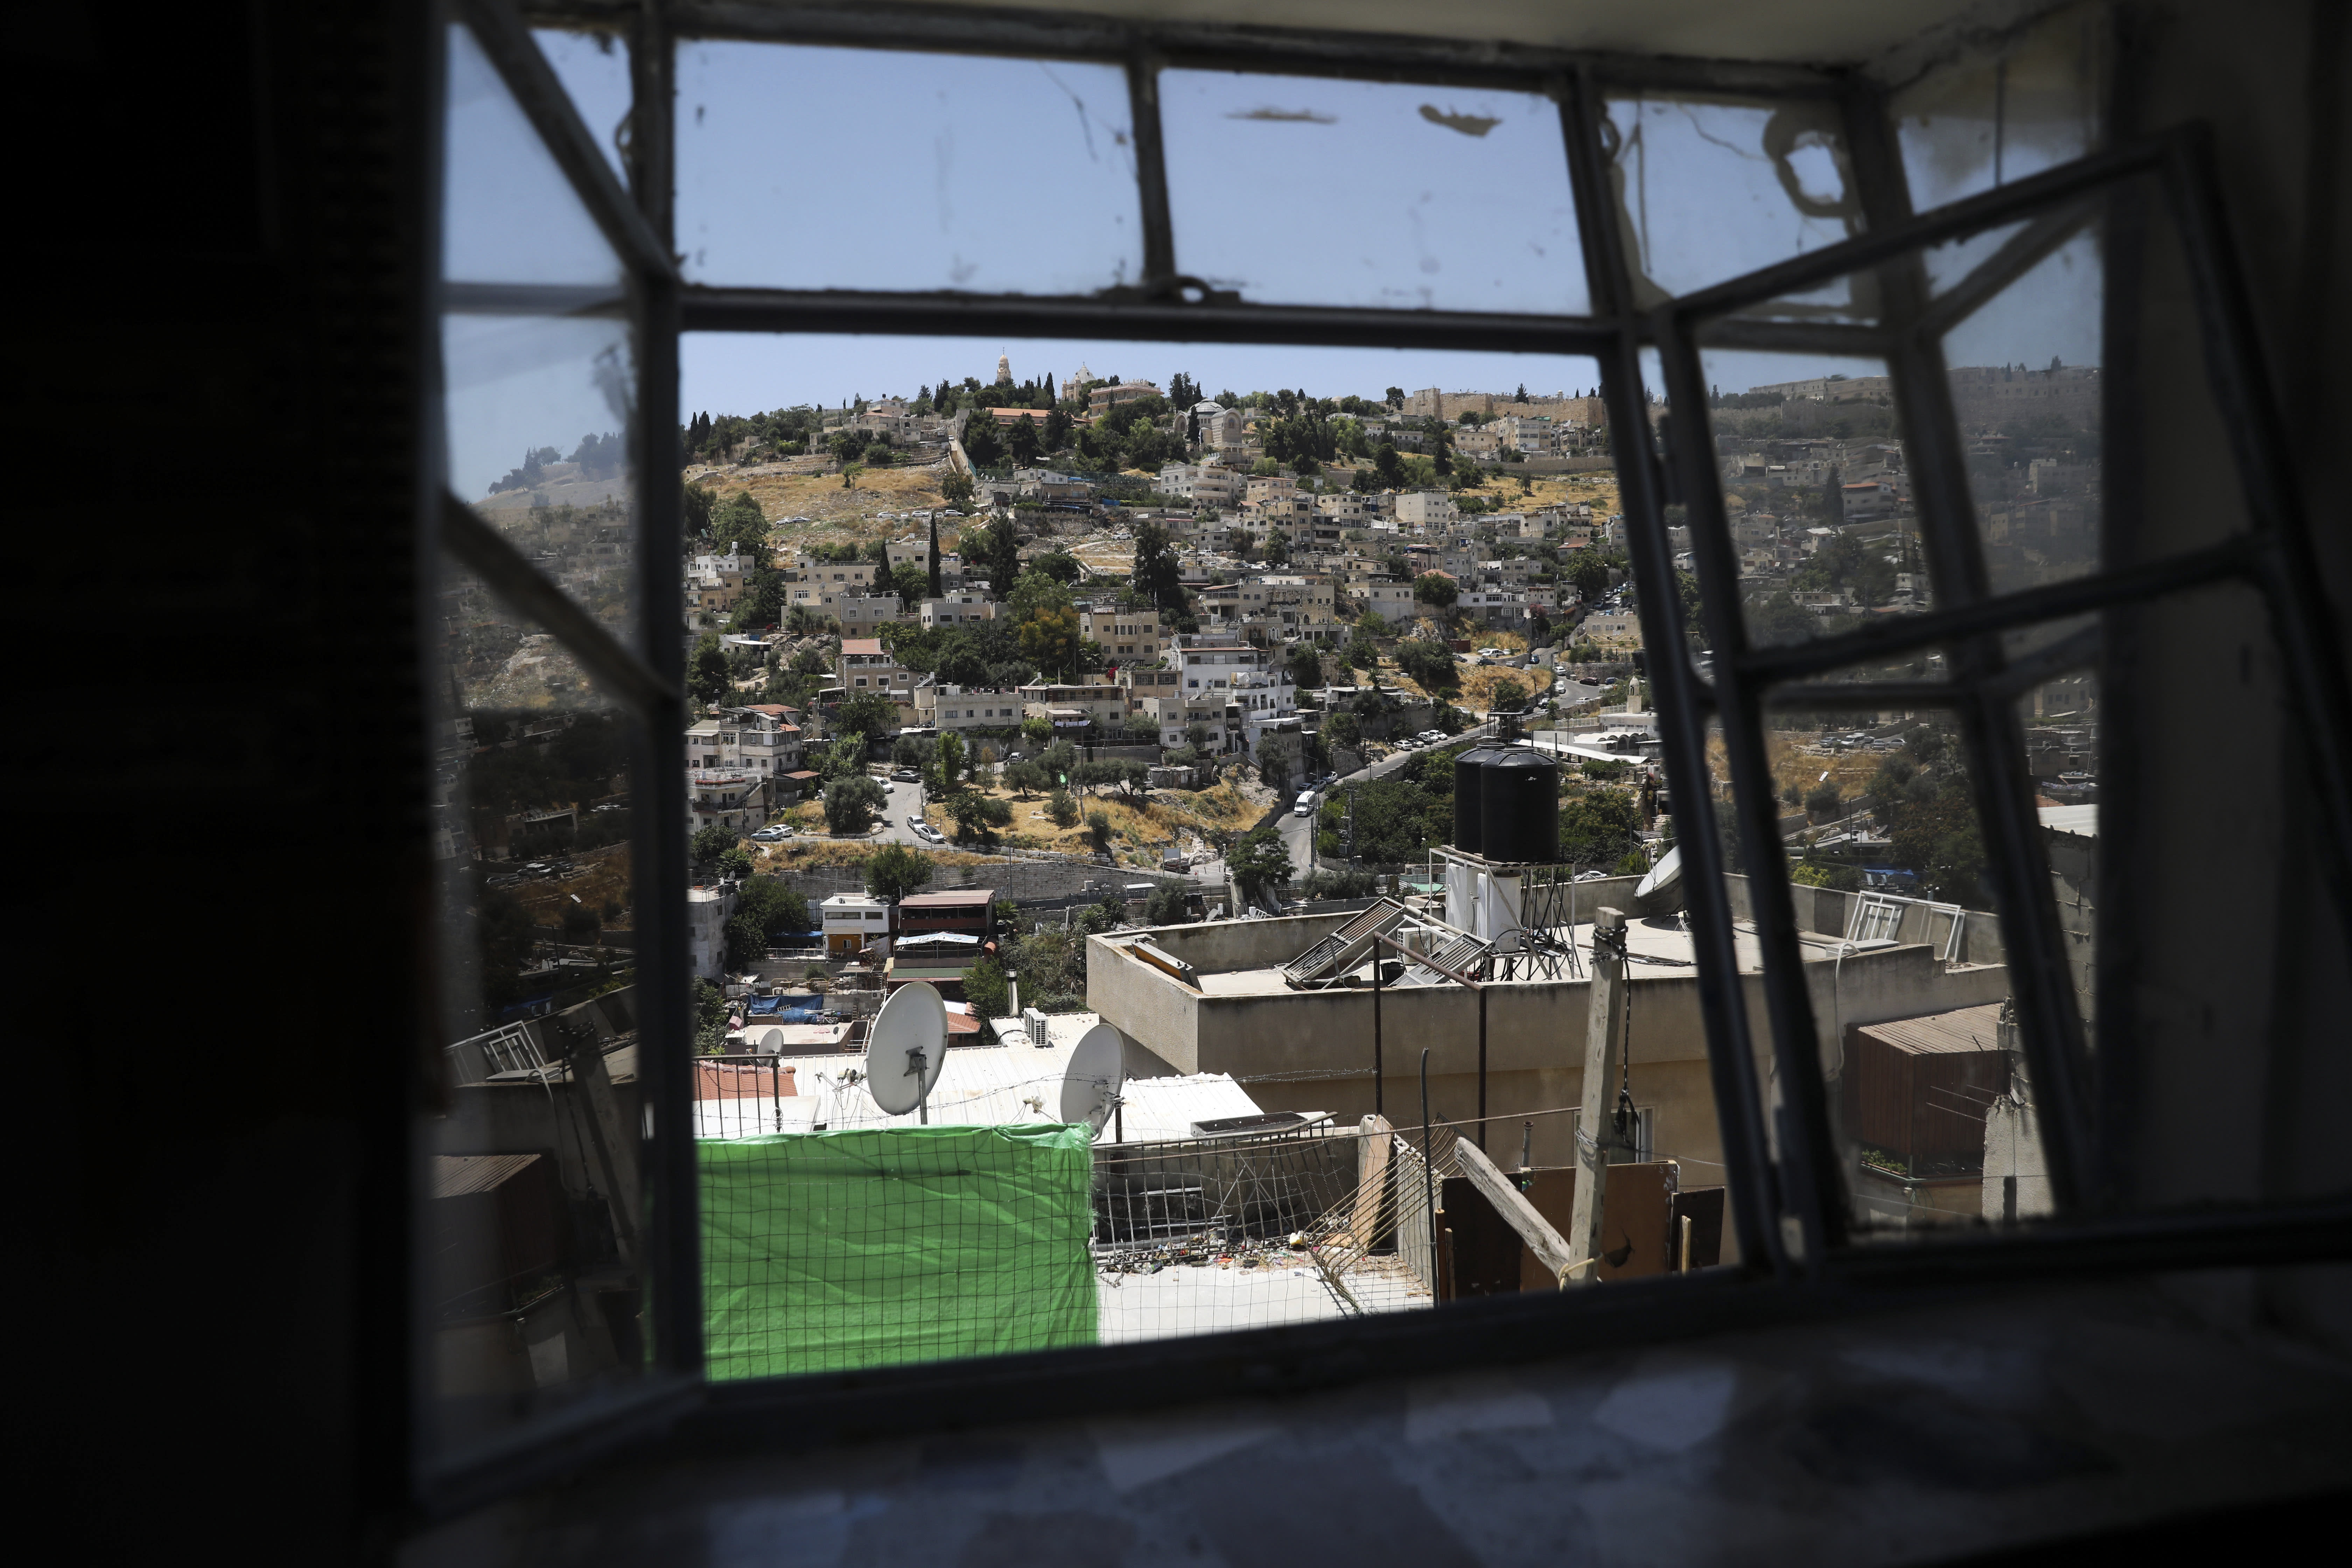 """A general view of a Palestinian neighborhood of Silwan in east Jerusalem, seen on Wednesday, July 1, 2020. Israeli leaders paint Jerusalem as a model of coexistence, the """"unified, eternal"""" capital of the Jewish people, where minorities have equal rights. But Palestinian residents face widespread discrimination, most lack citizenship and many live in fear of being forced out. (AP Photo/Mahmoud Illean)"""